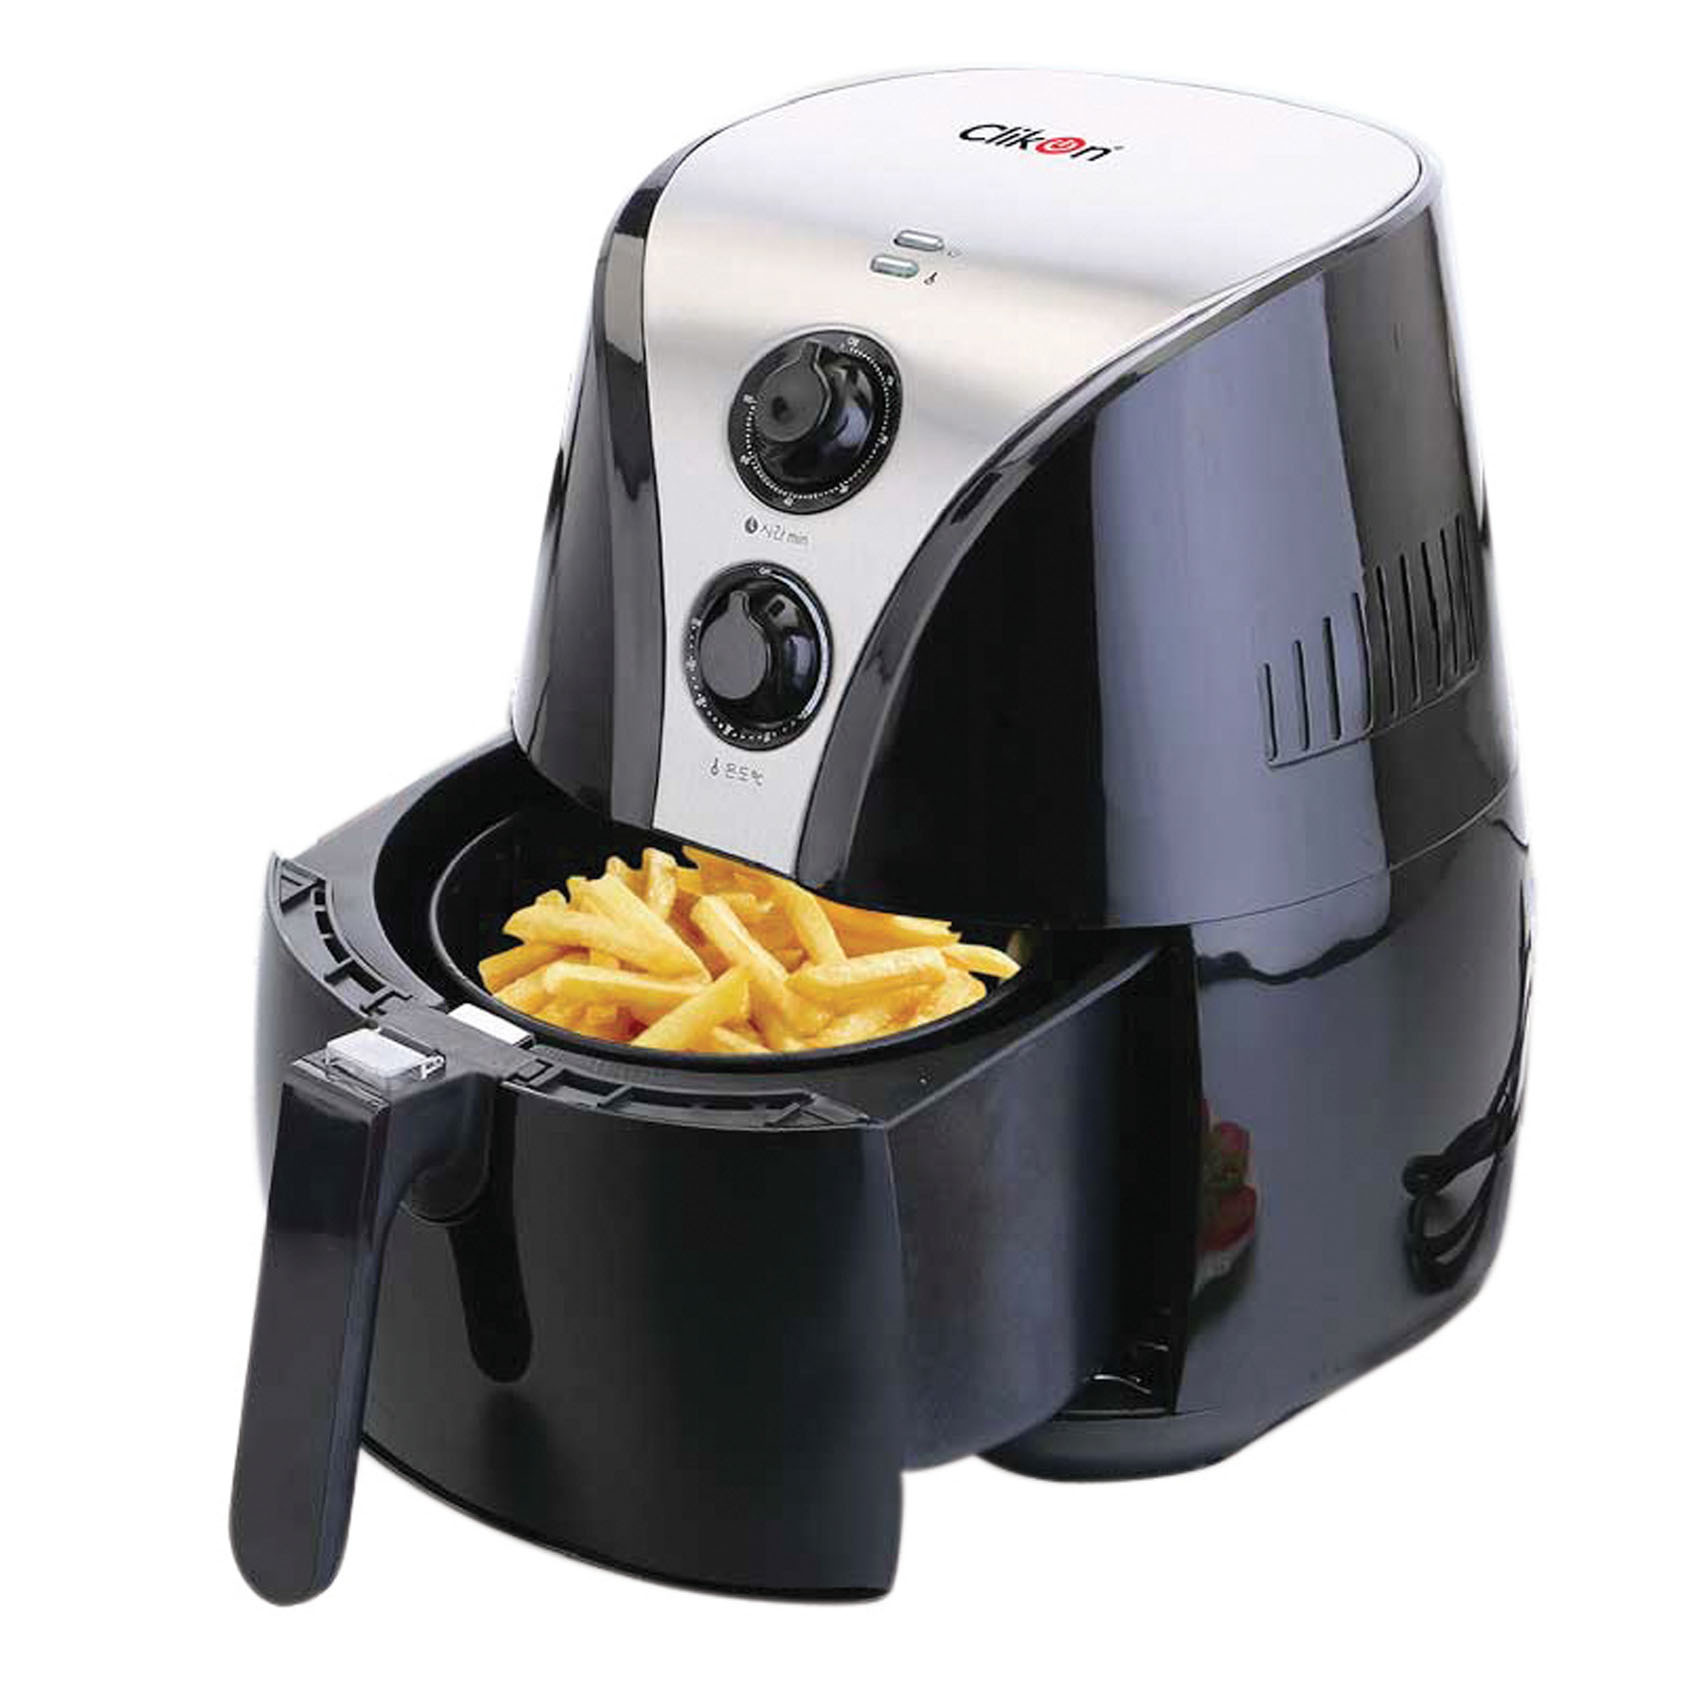 CLIKON AIR FRYER CK2257